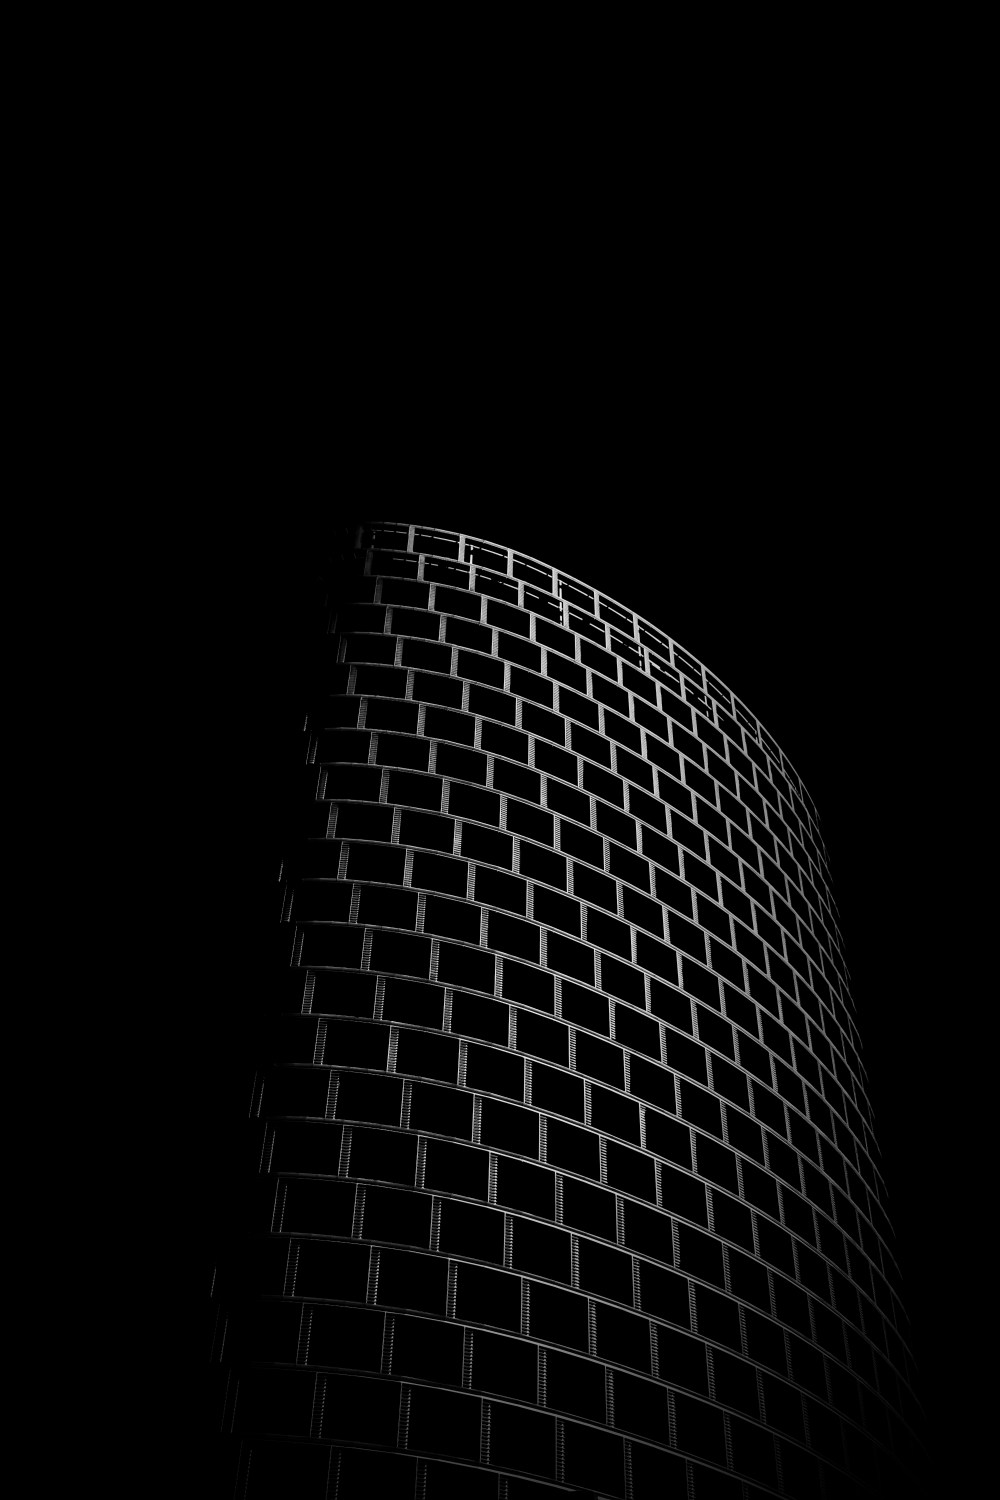 amoled wallpapers free download